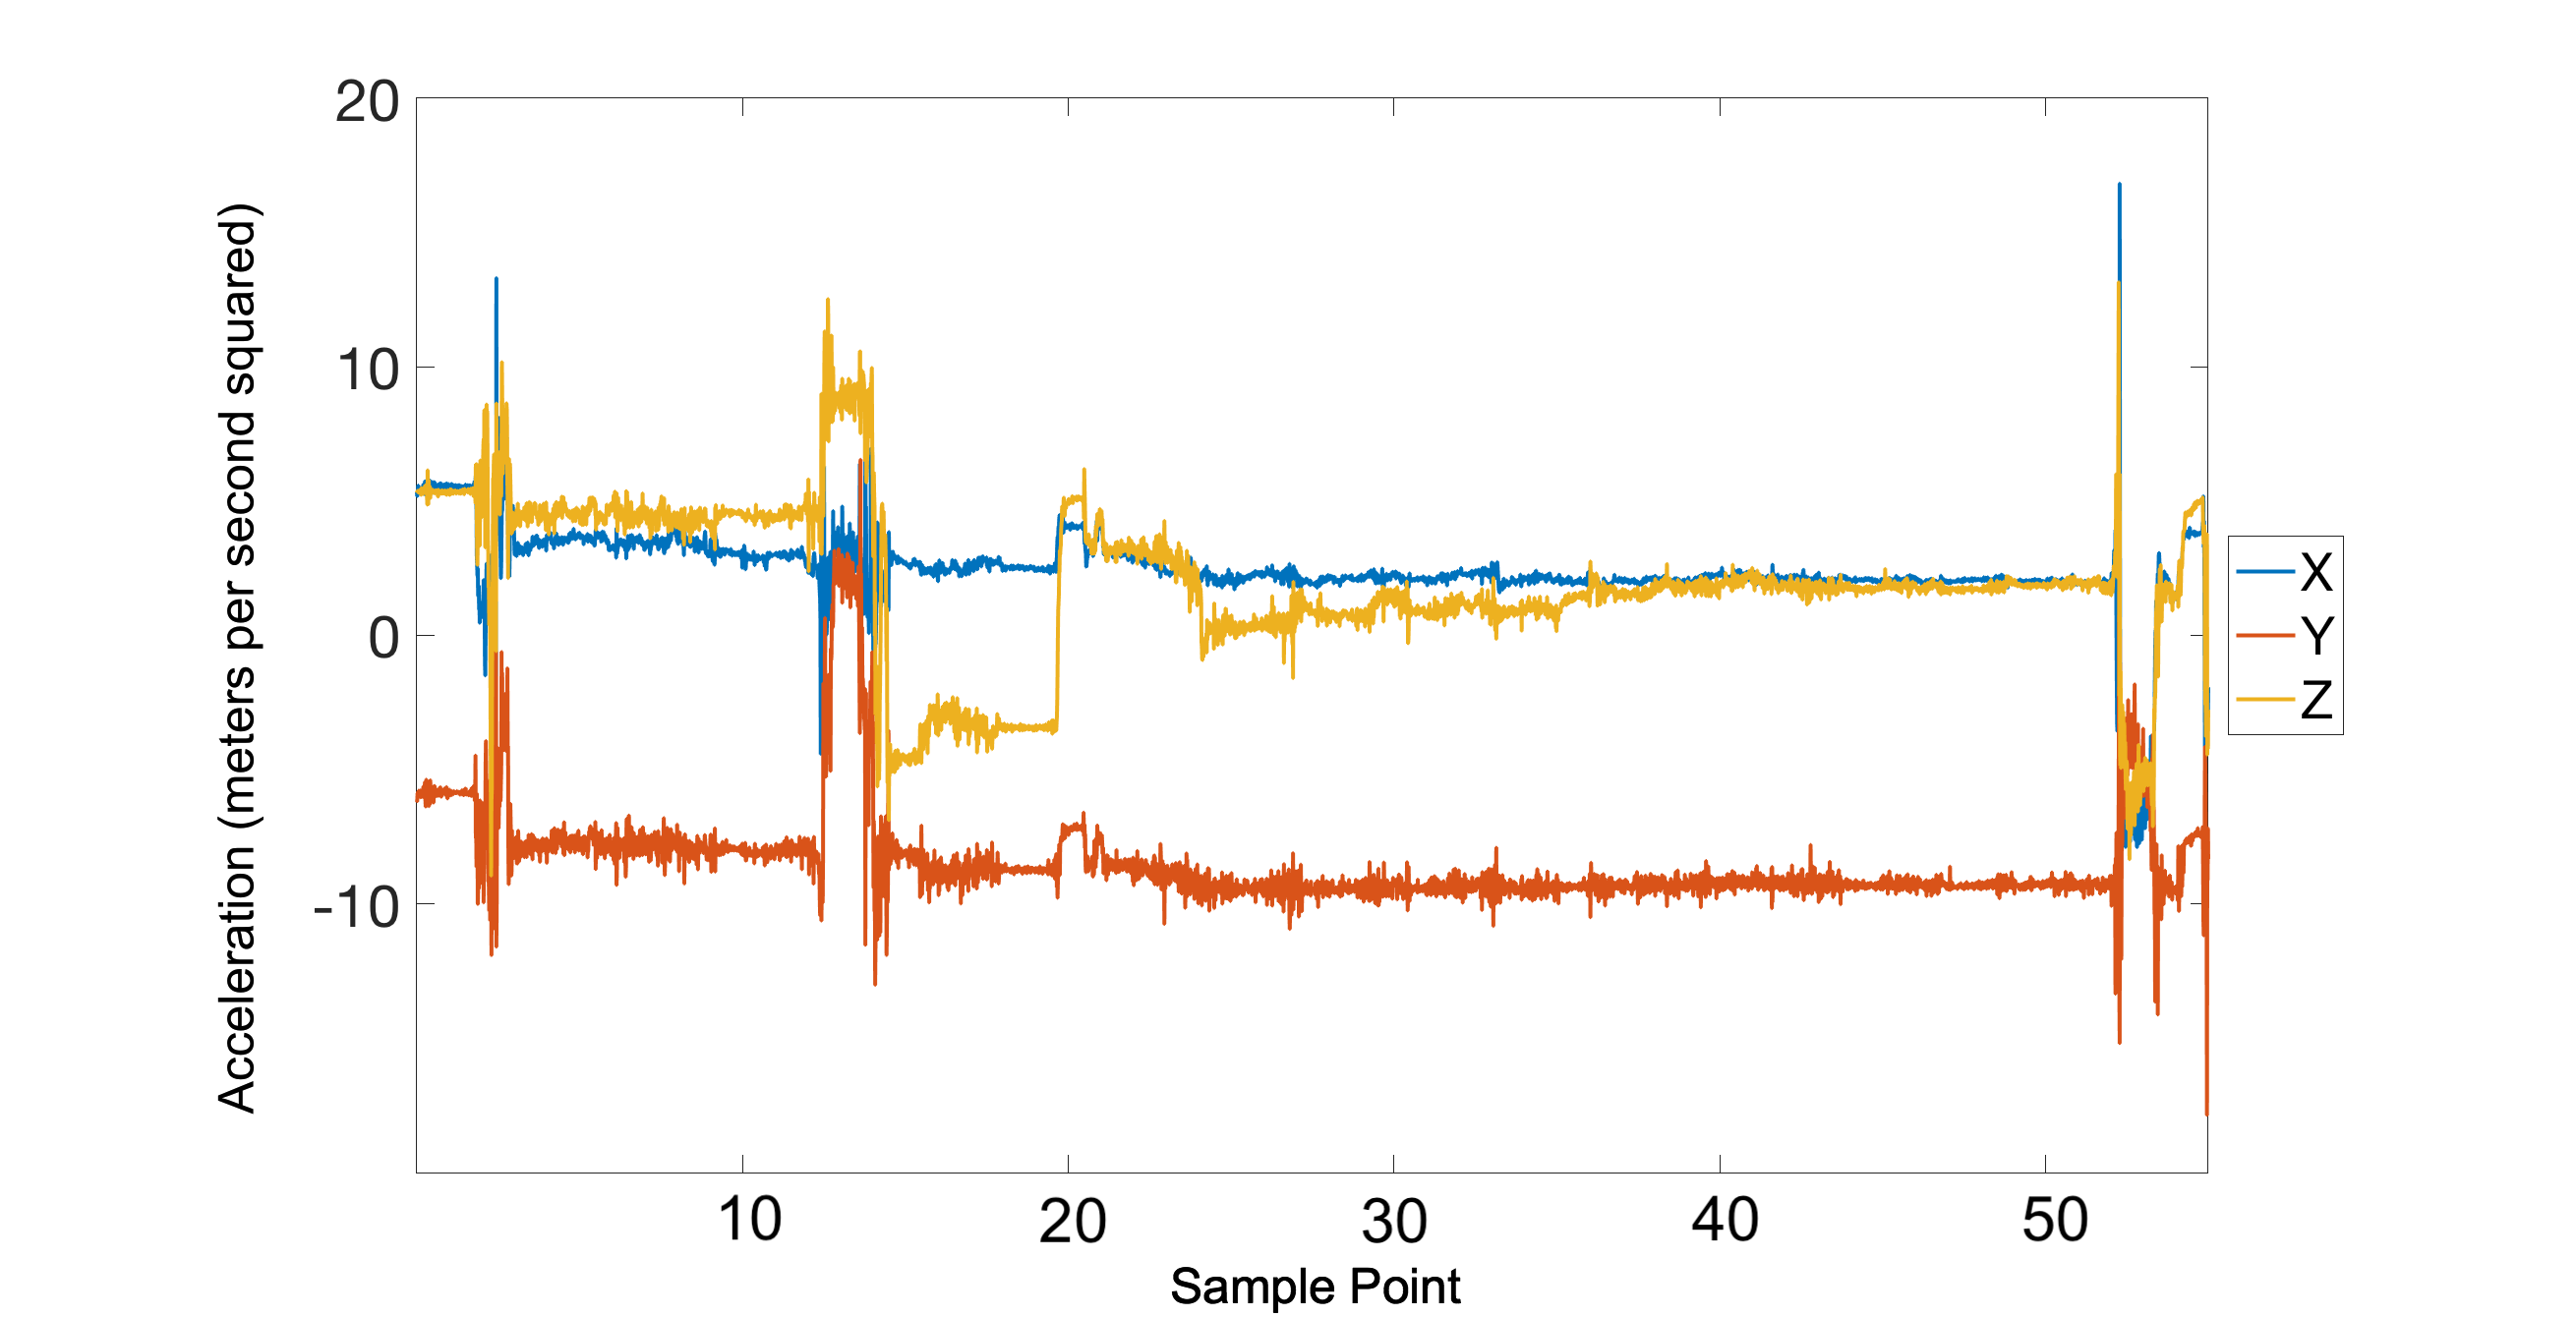 Jmu Detecting Smoking Events Using Accelerometer Data Collected Via Passive Networks Intuitive Explanation For Filters Electrical View This Figure 8 Session Was Reported As A But No Clear Gestures Can Be Identified